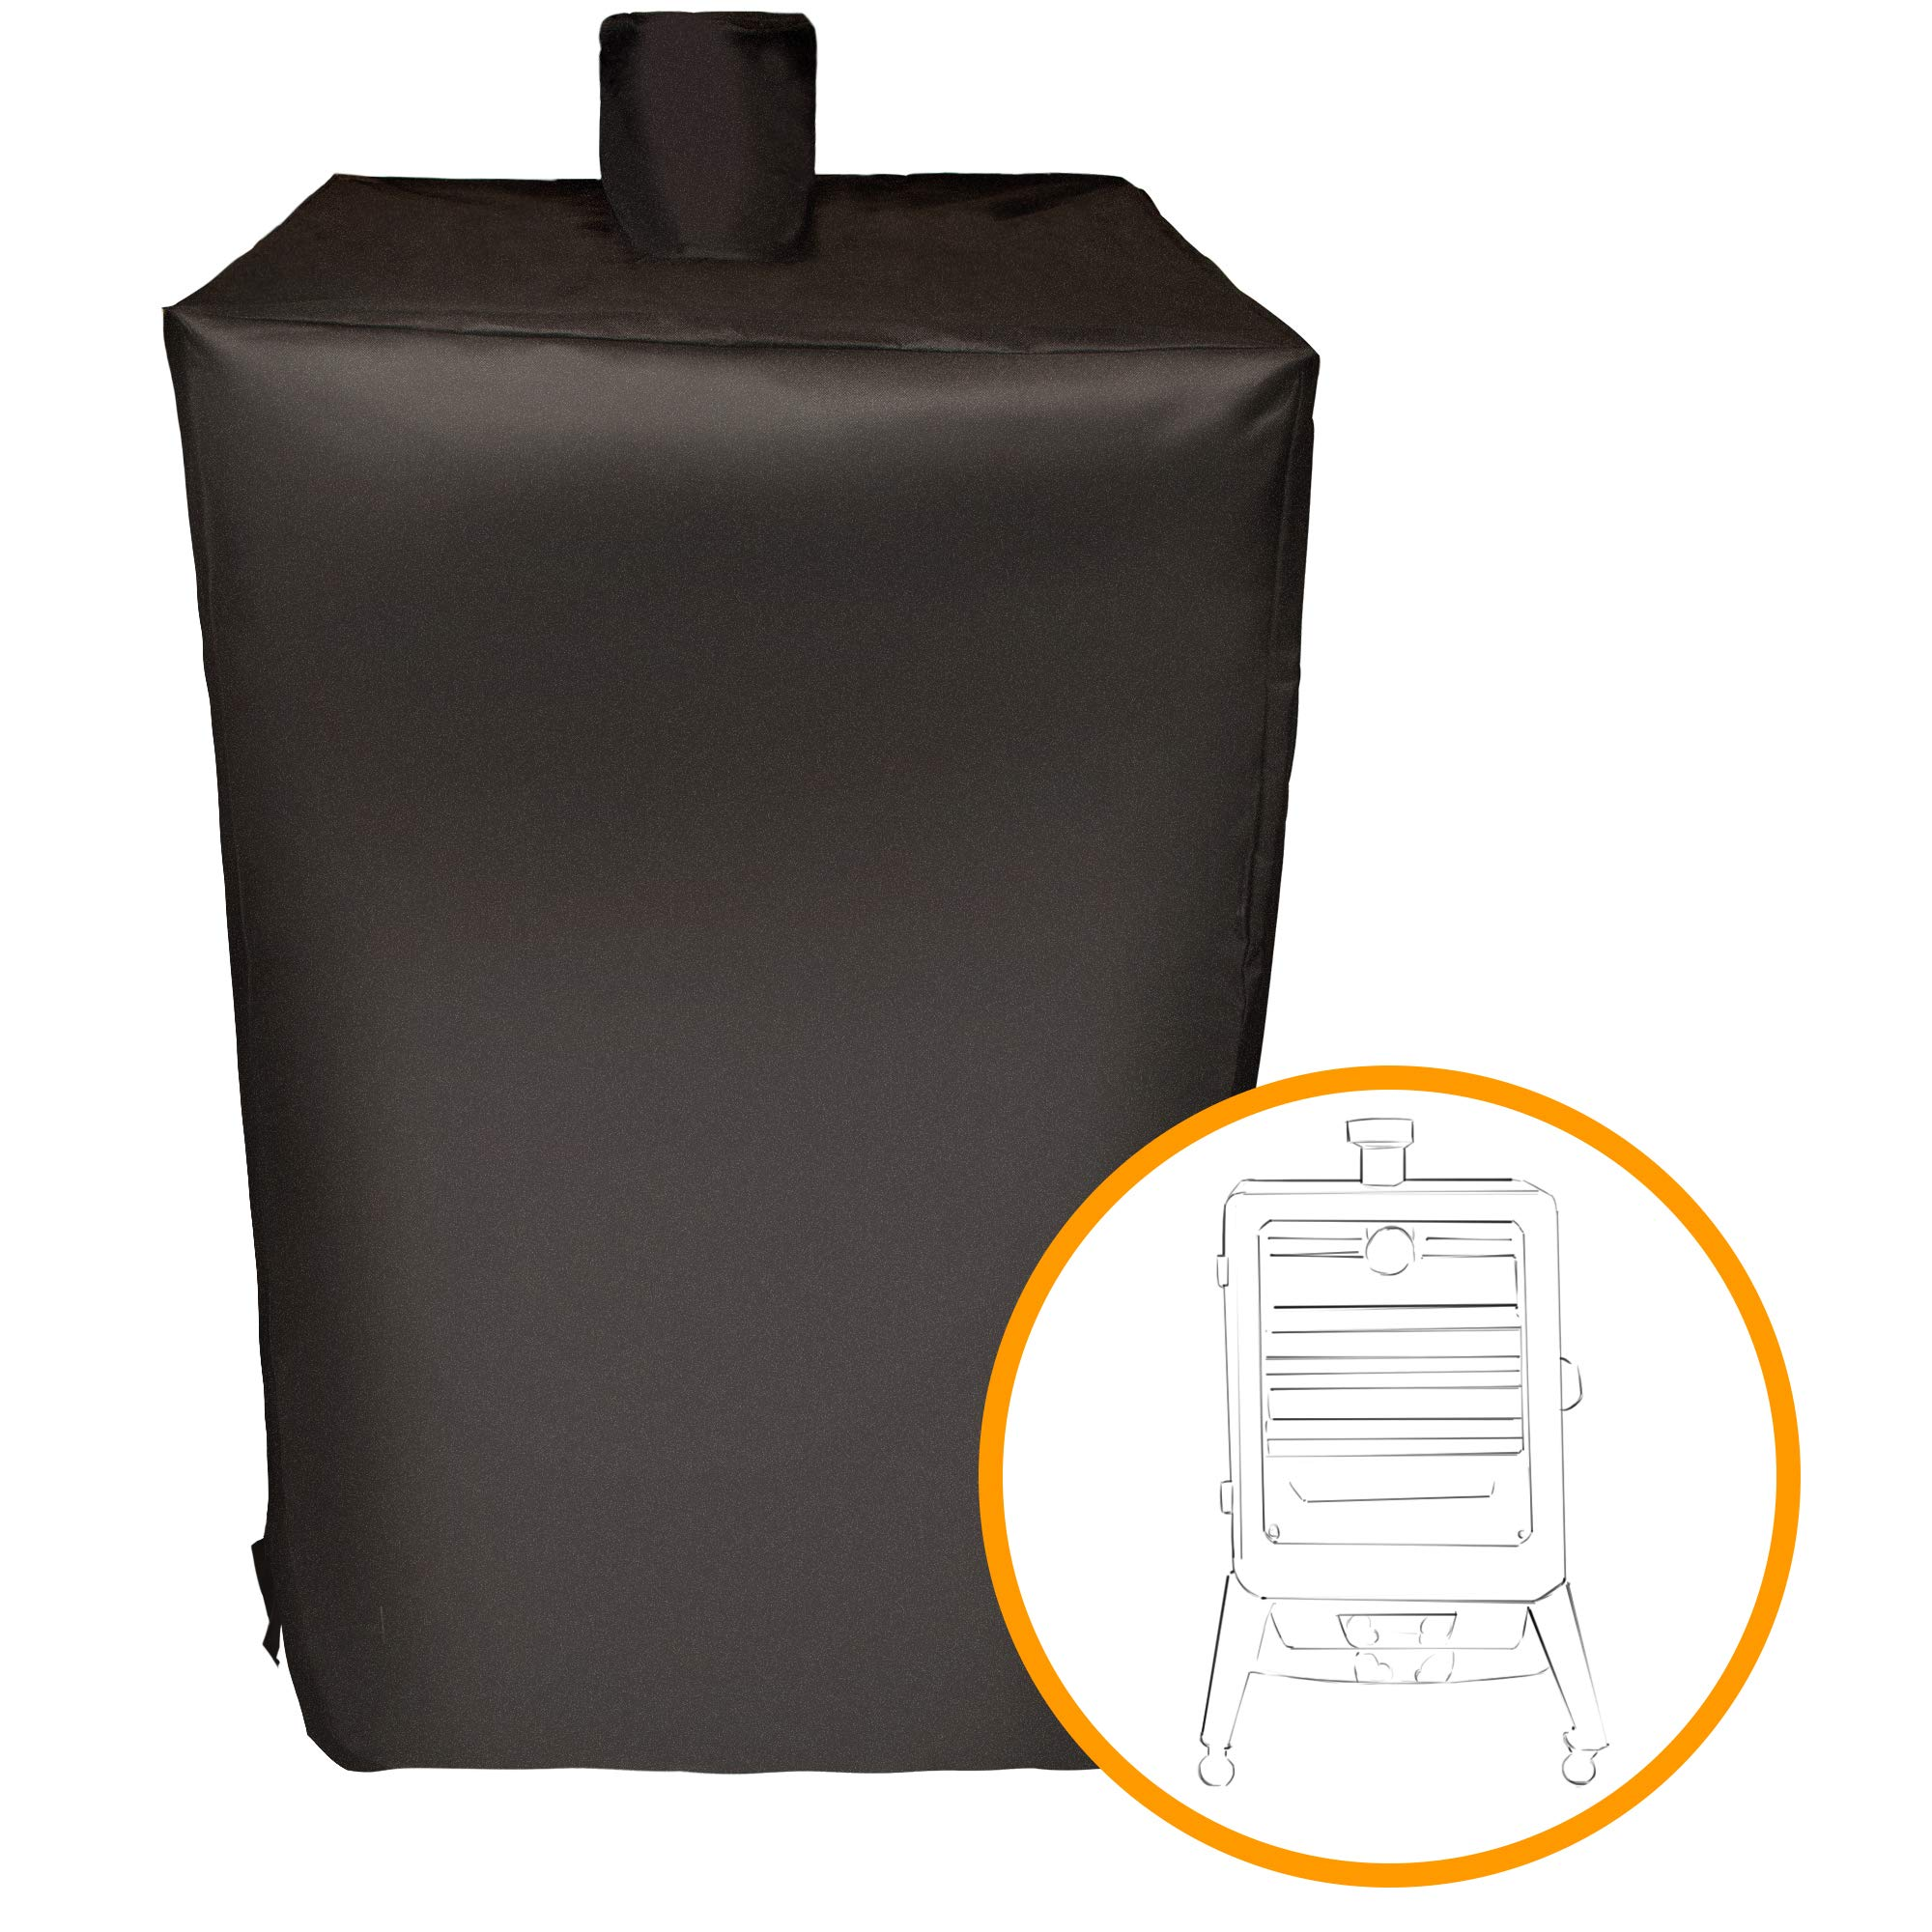 i COVER Smoker Cover Sized for Pit Boss Grills 77550 5.5 and 5 Series, pro Series 4 Vertical Pellet Smokers Waterproof Heavy-Duty Water Proof Patio Outdoor Canvas Vertical Smoker Cover #G21625 by i COVER